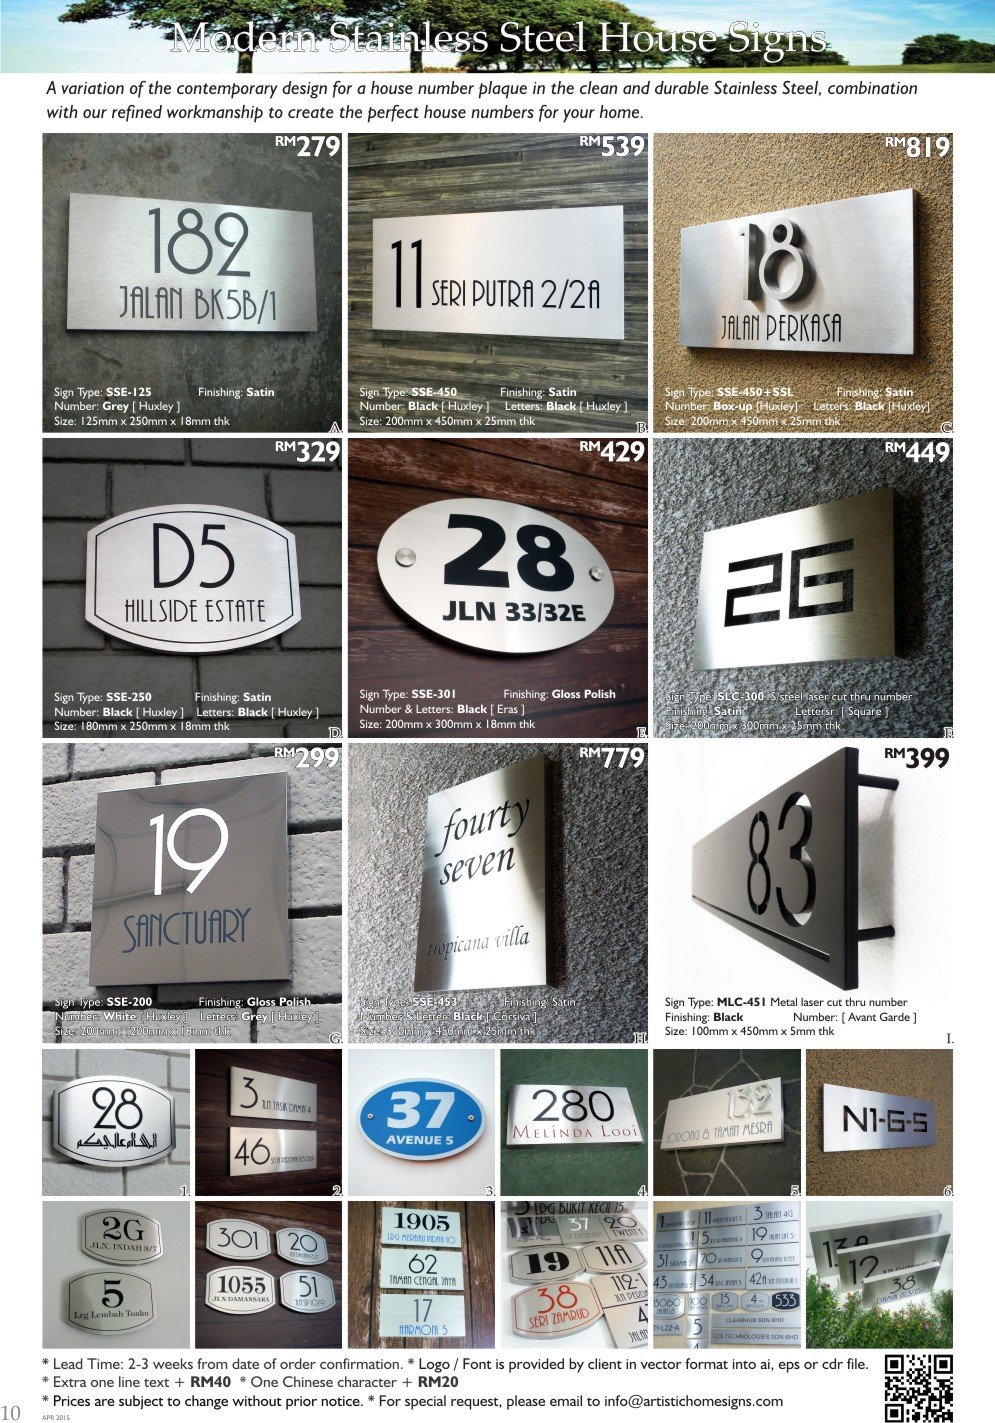 2015 Modern Stainless Steel House Signs